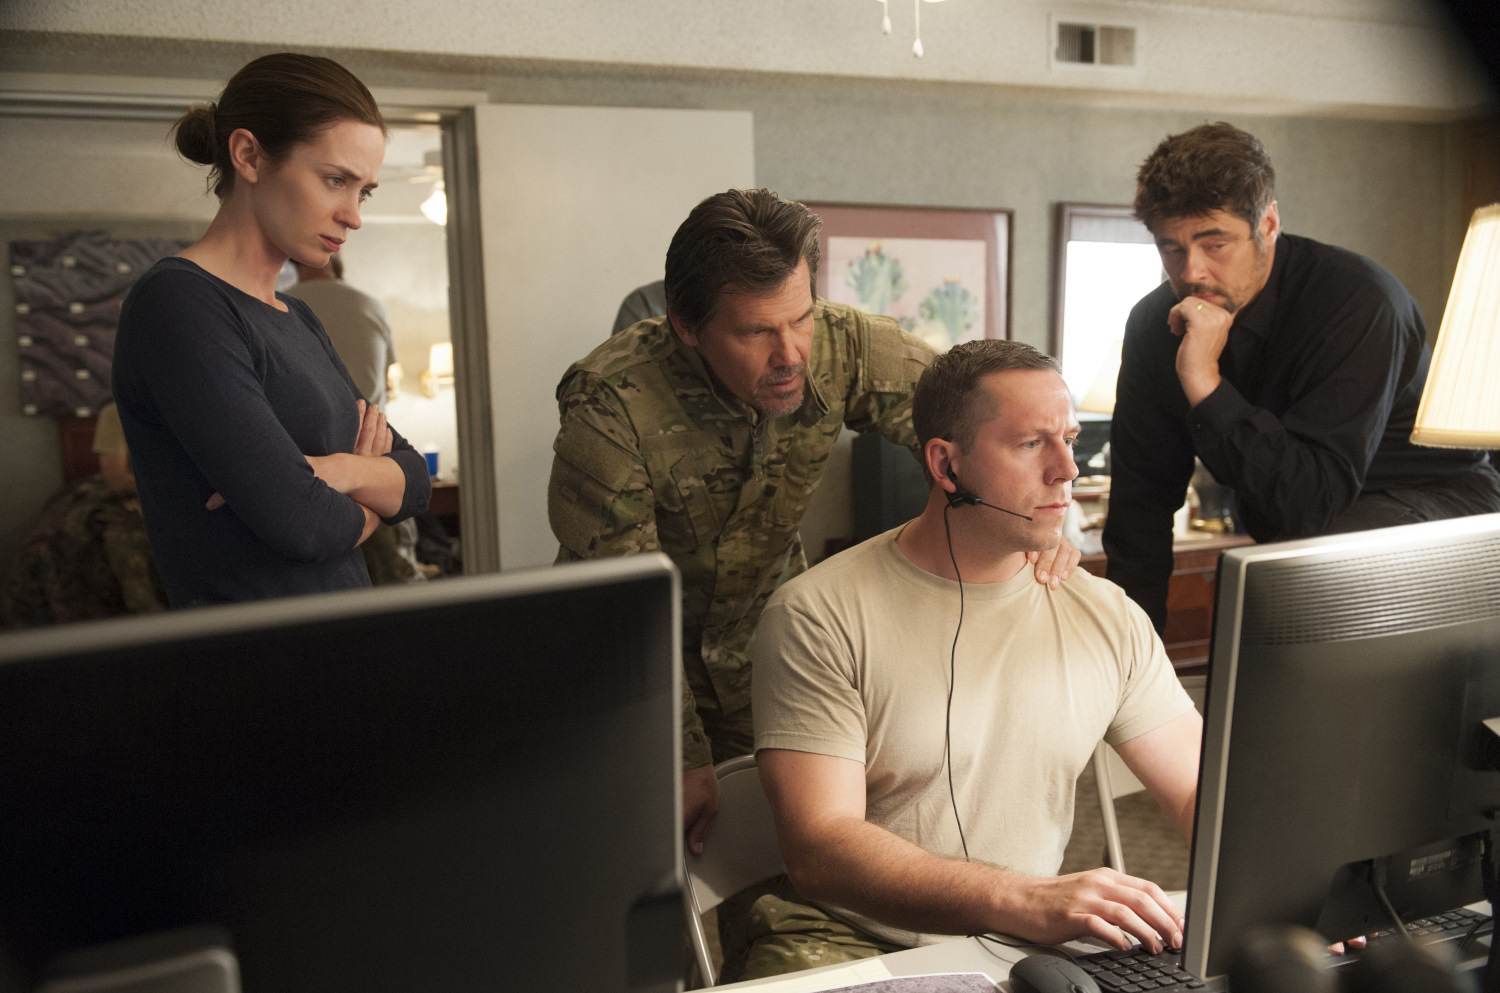 Cannes Film Festival 2015: Sicario and Youth